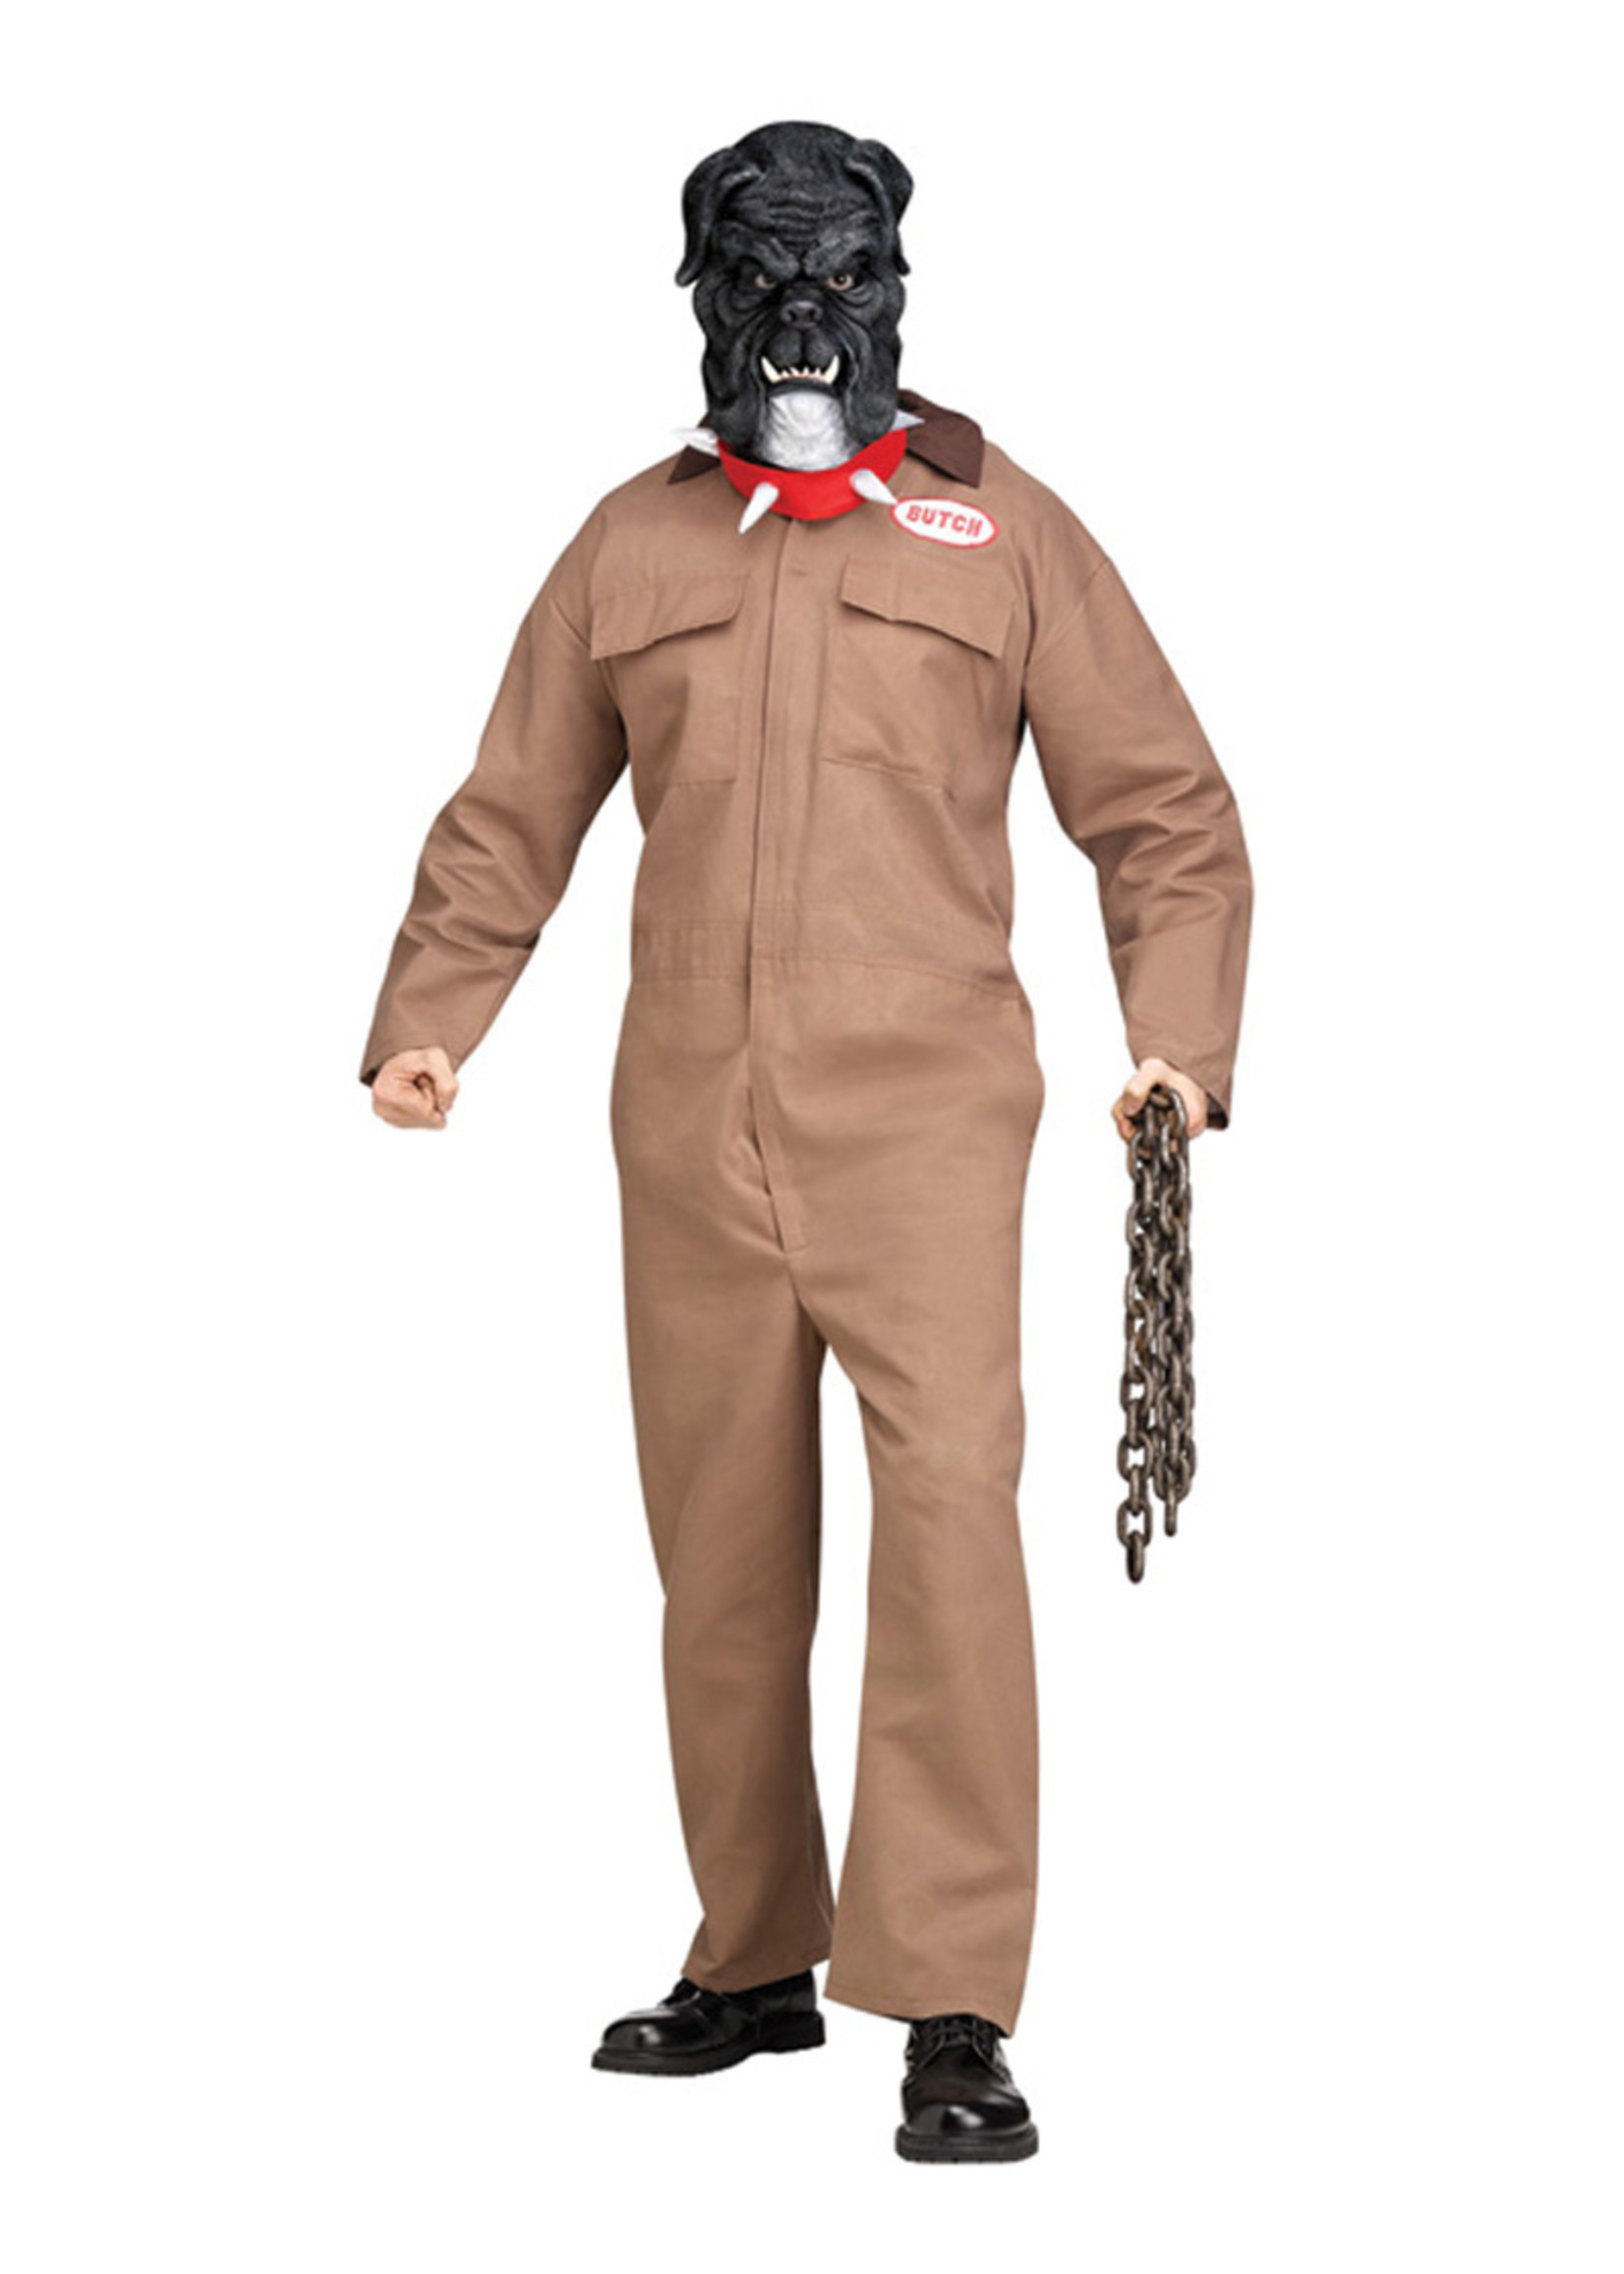 Junk Yard Dog Costume - Men's